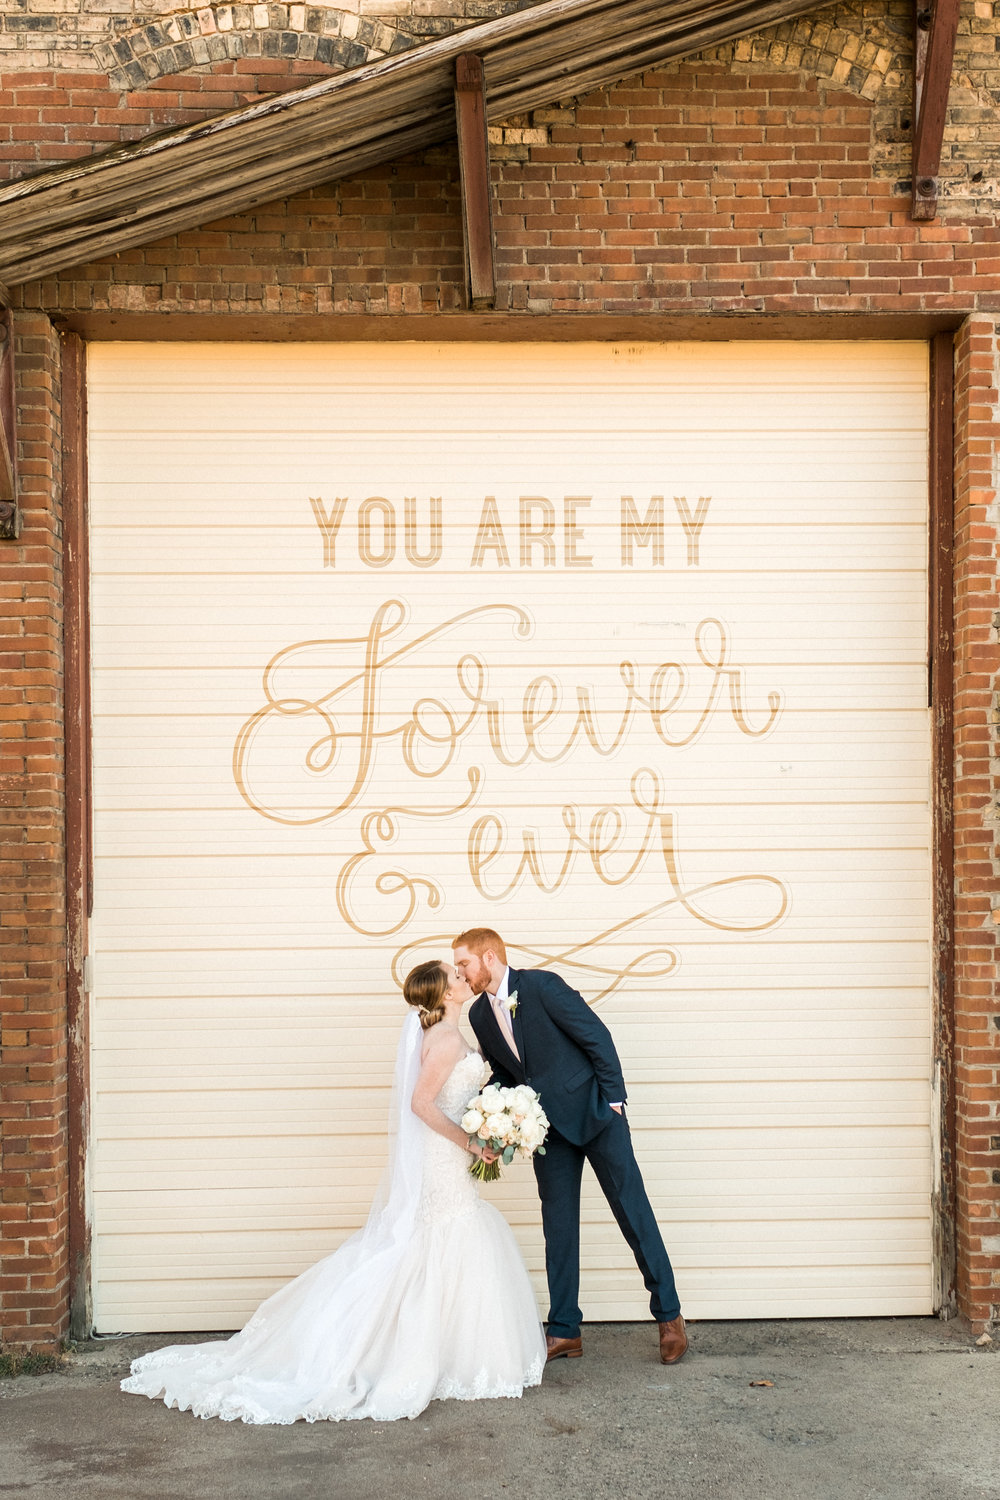 outdoor wedding signage NP Space minnesota